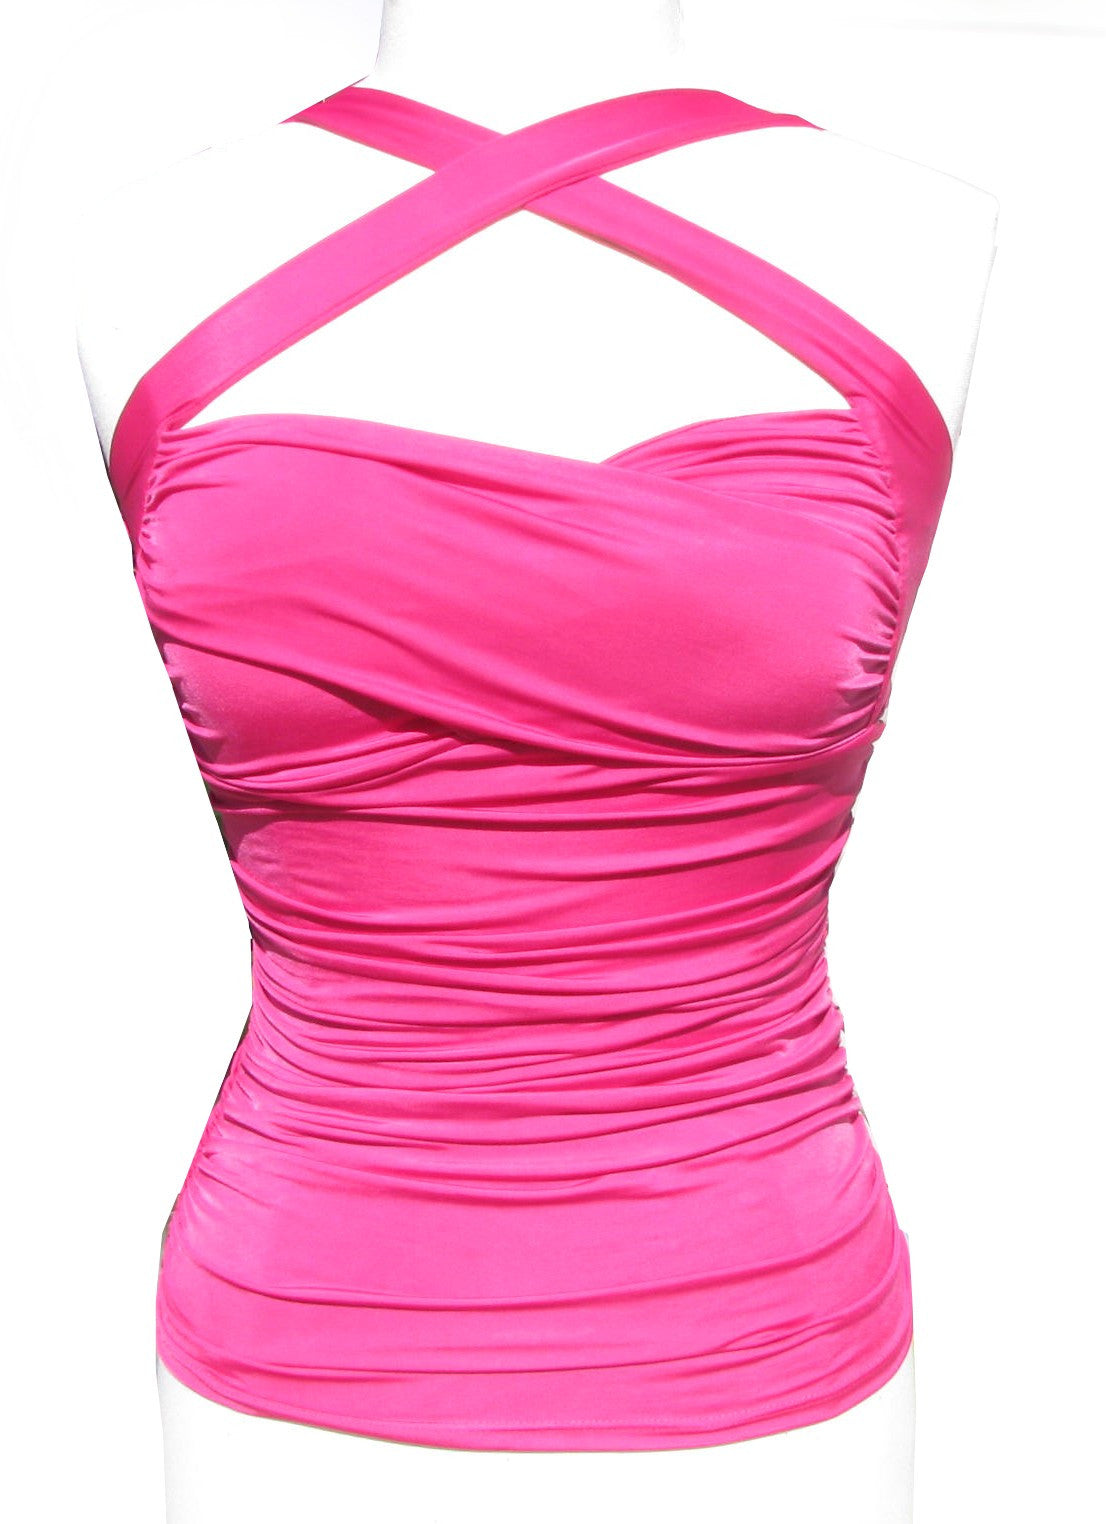 Bright Pink Ruched Halter Top Cross Your Heart pinup style convertible straps - Cool Hot Fashions